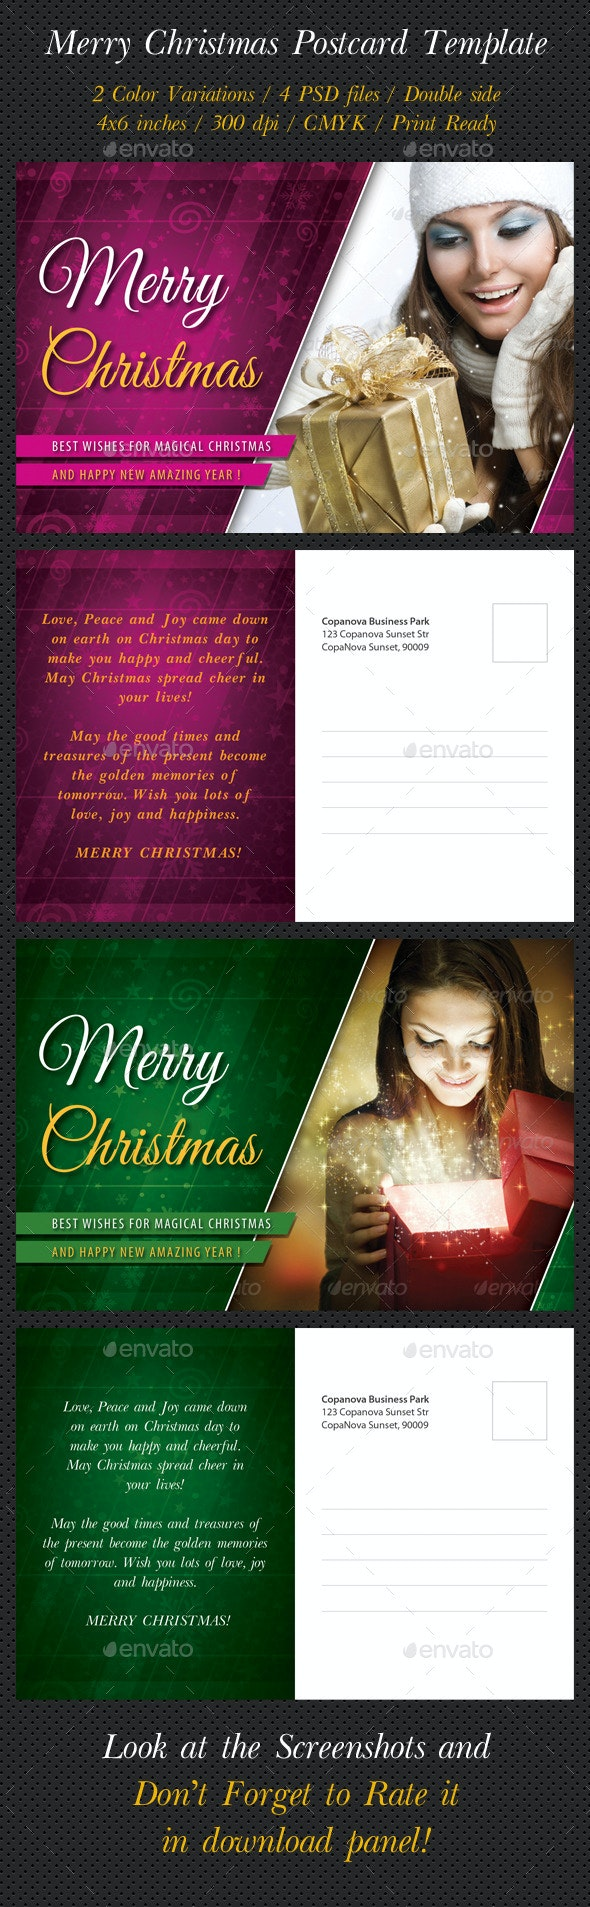 Merry Christmas Postcard Template - Holiday Greeting Cards